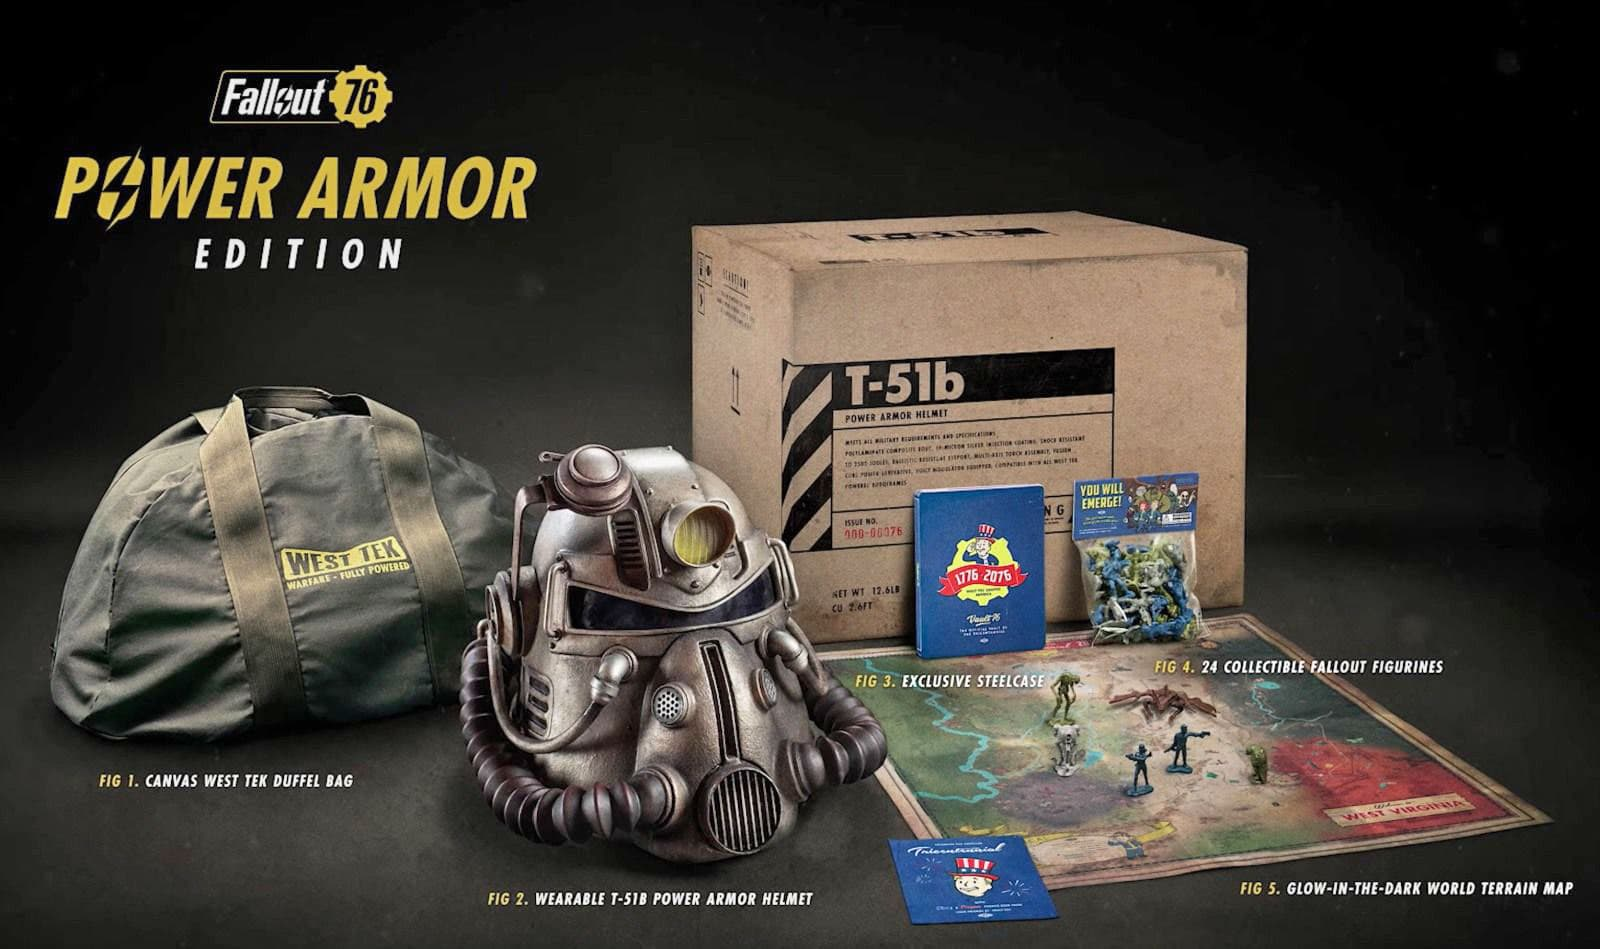 Fallout 76' Power Armor Edition buyers will get their canvas